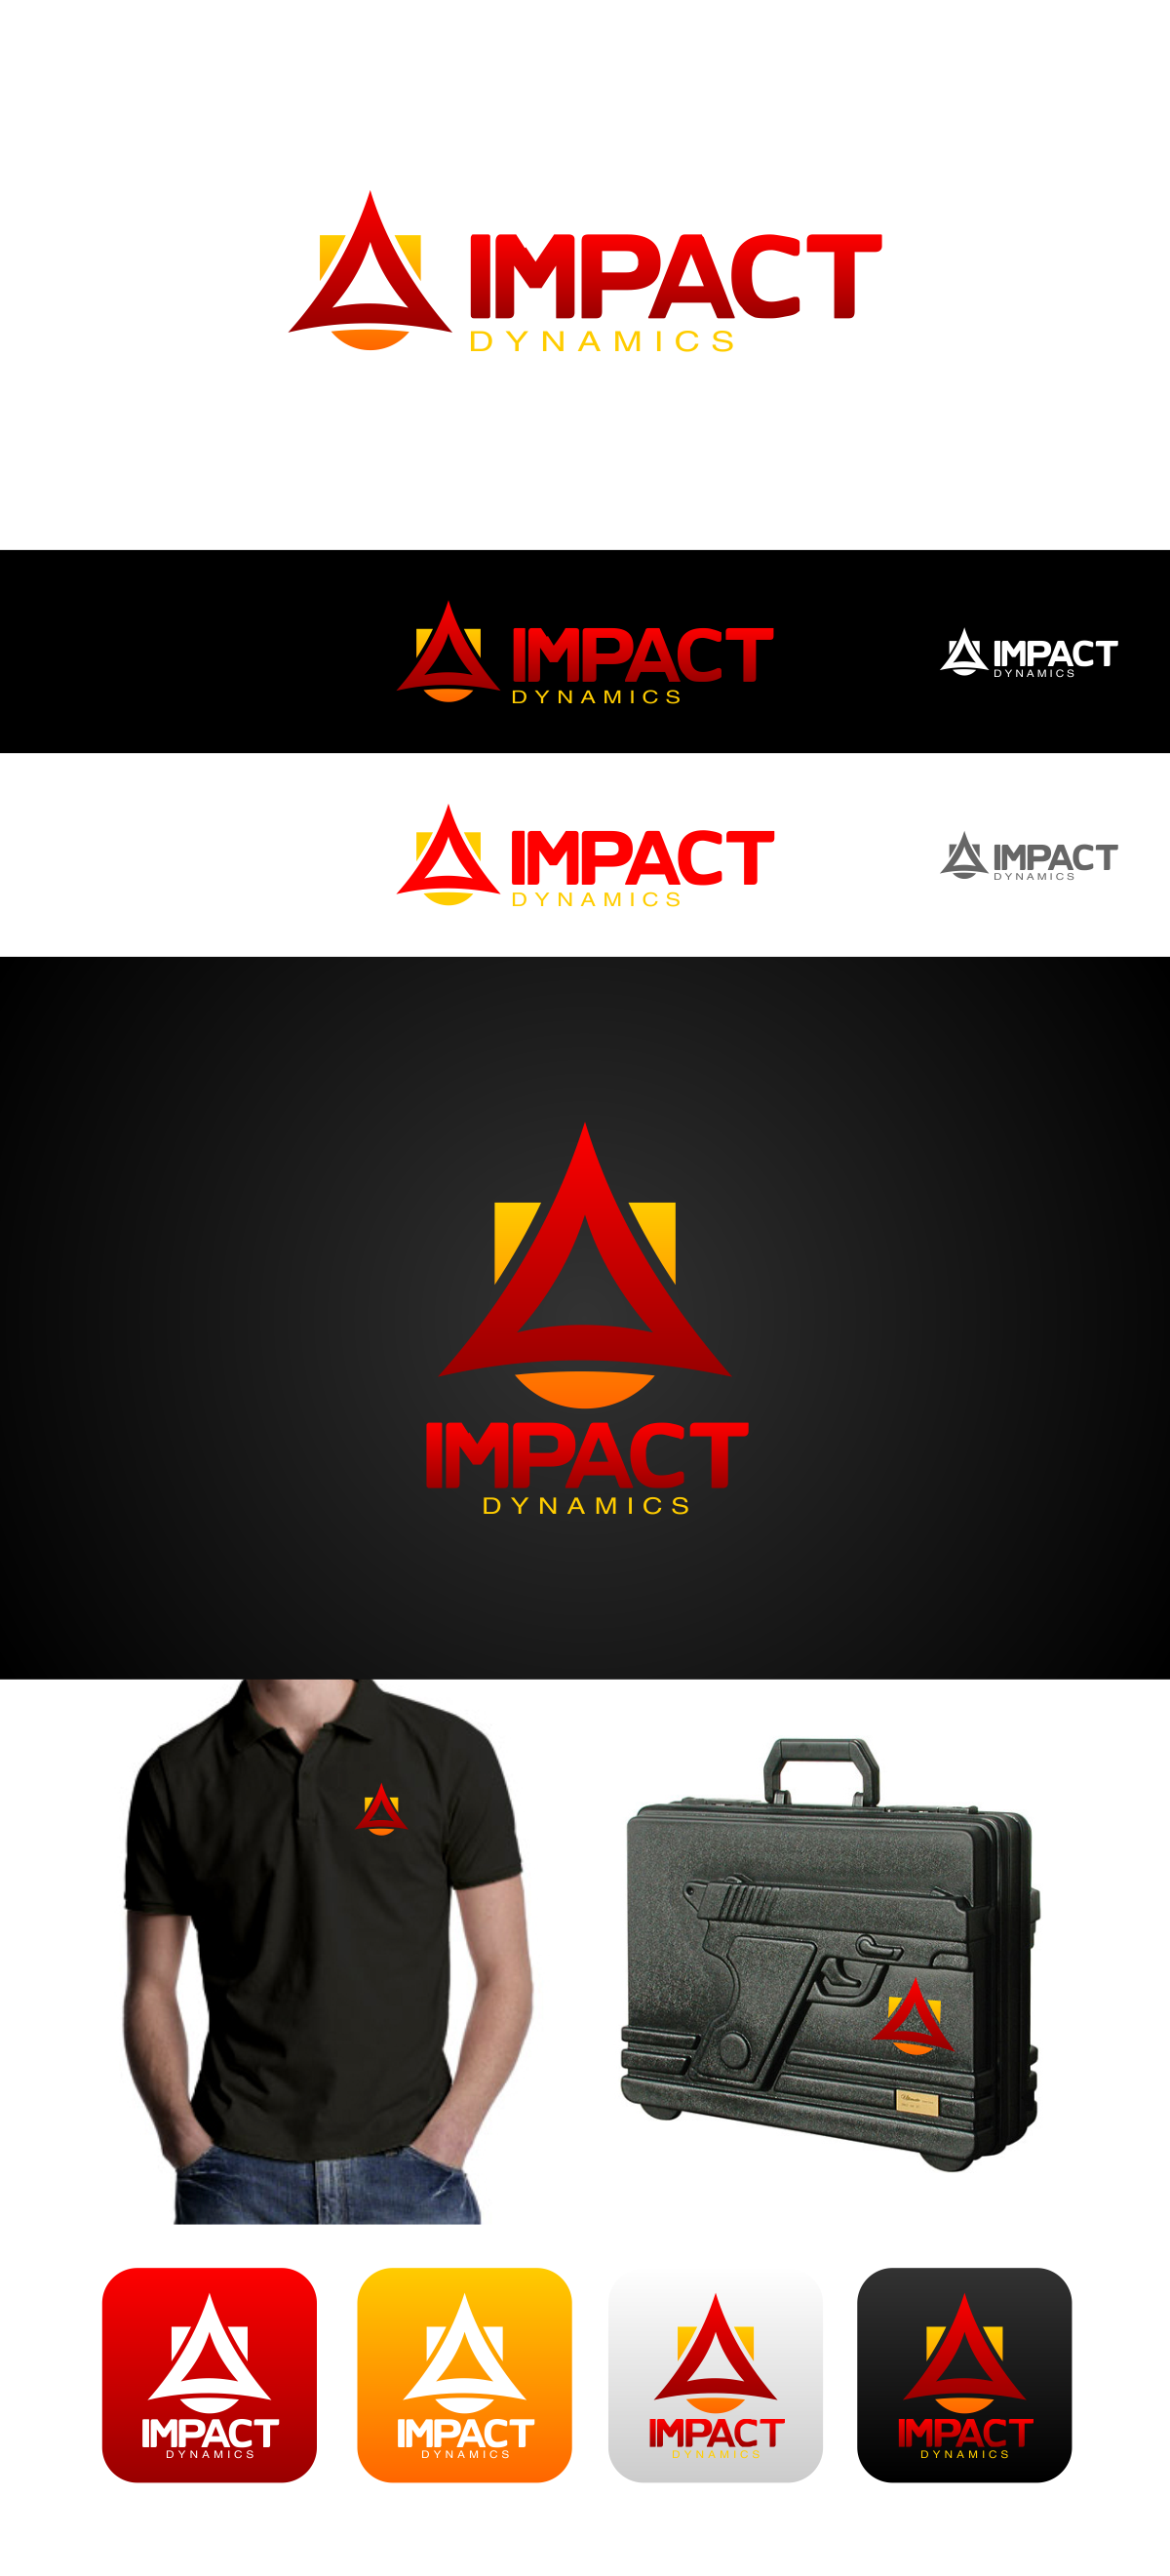 Help Impact Dynamics with a new logo